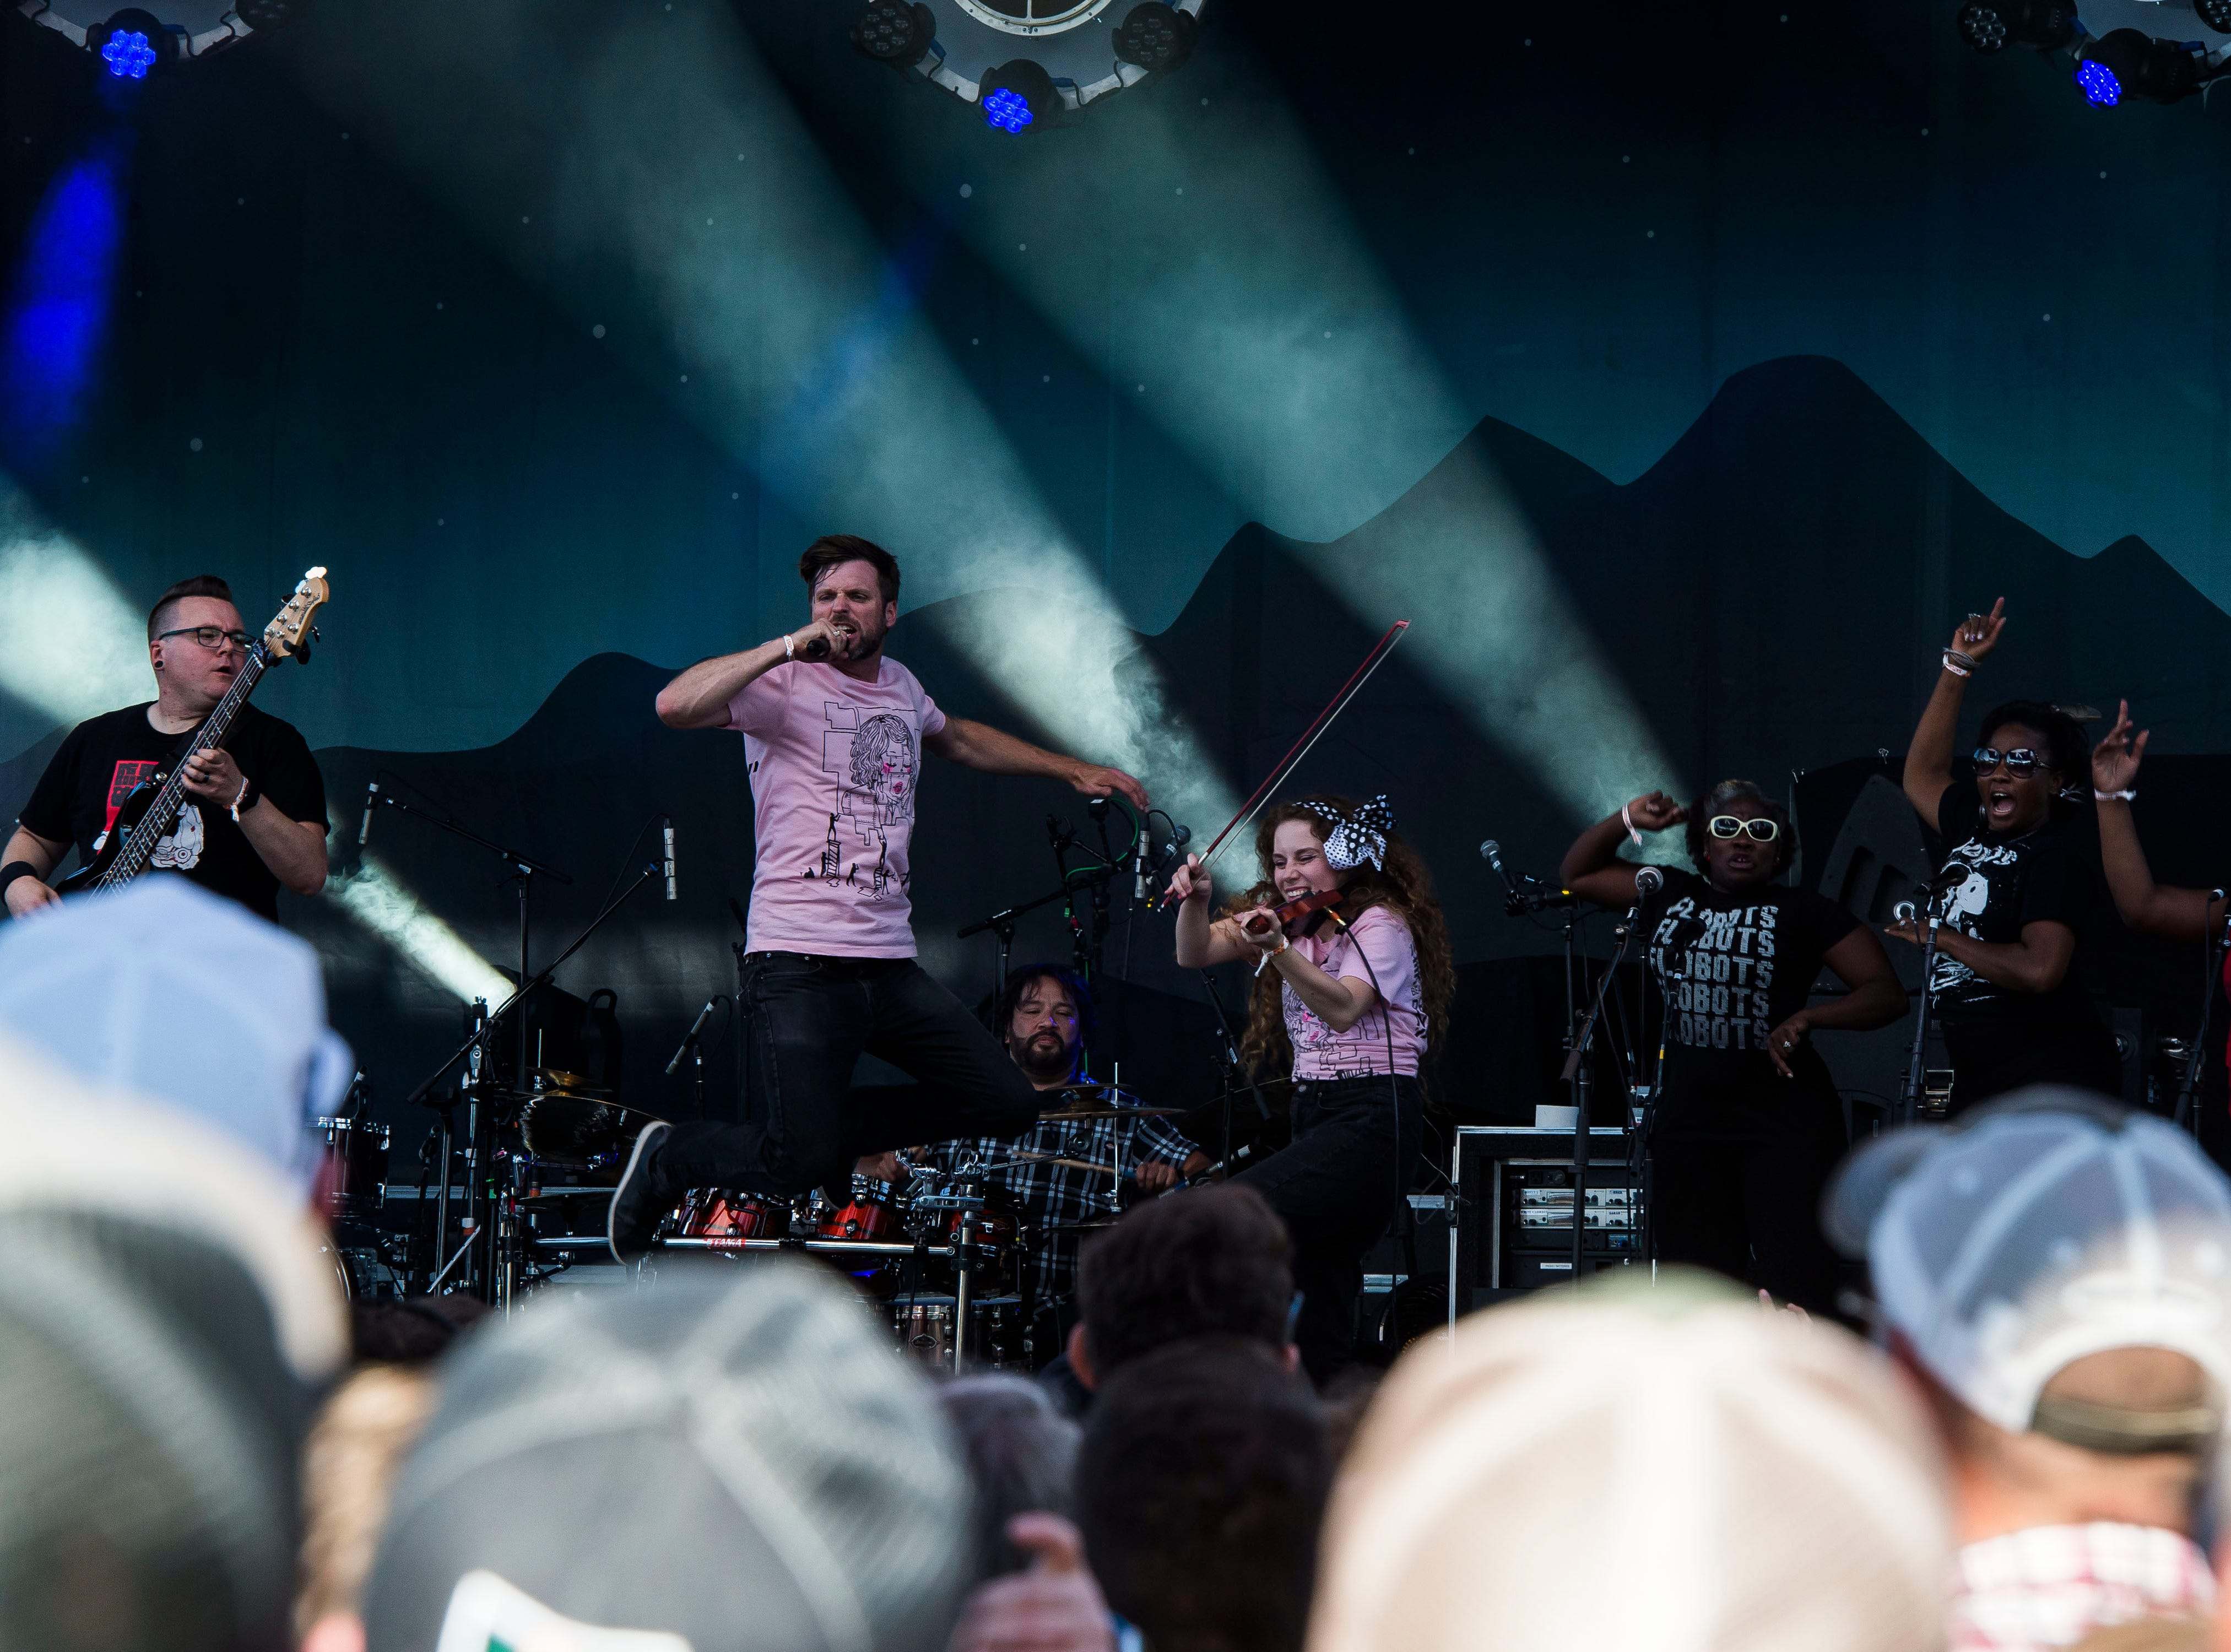 The Flobots play the Mountain Avenue stage during the second day of Bohemian Nights at NewWestFest on Saturday, Aug. 11, 2018, in Old Town Fort Collins, Colo.